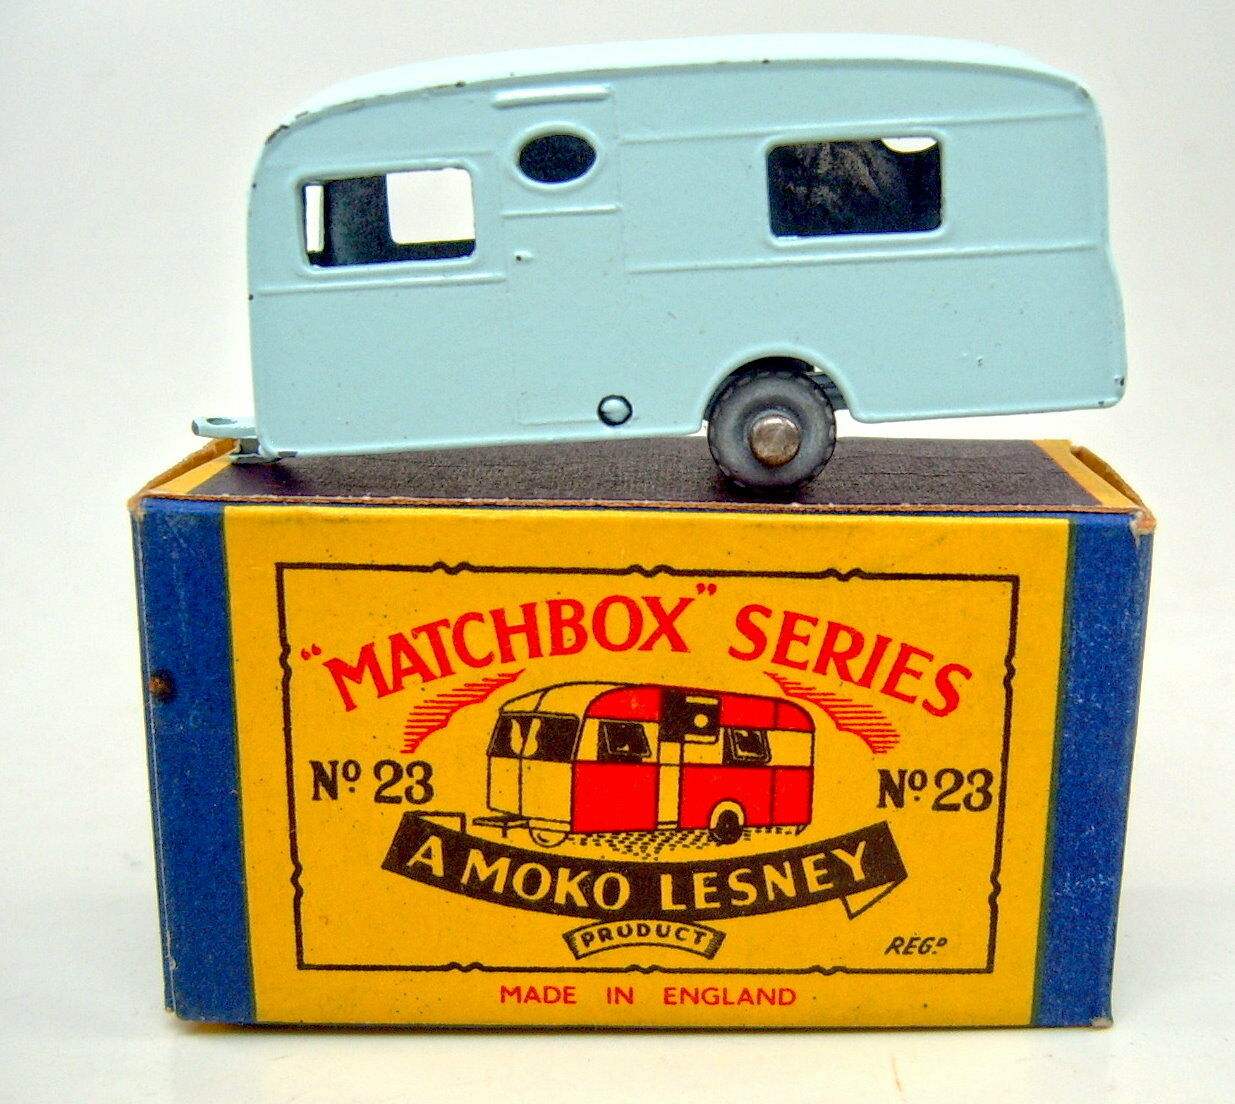 Matchbox Rw 23a Caravan Trailer Light bluee Metal Wheels in  B  Box